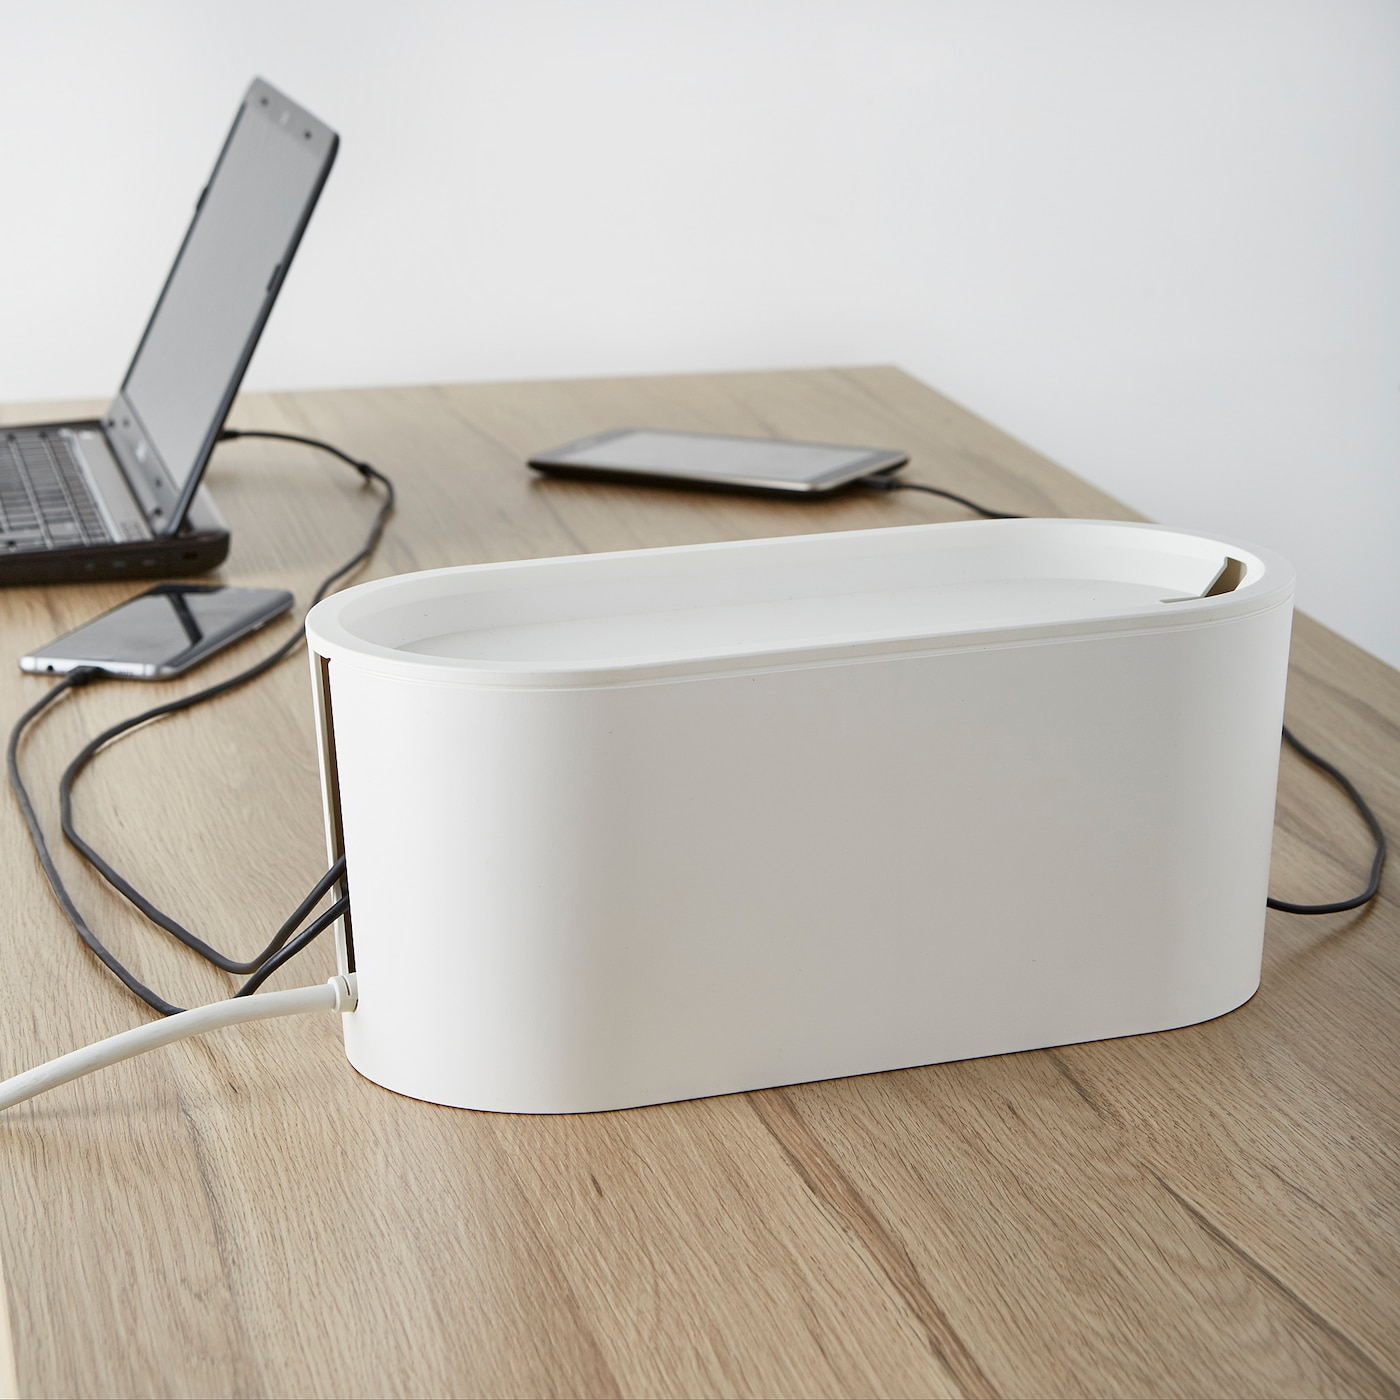 Romma Cable Management Box With Lid